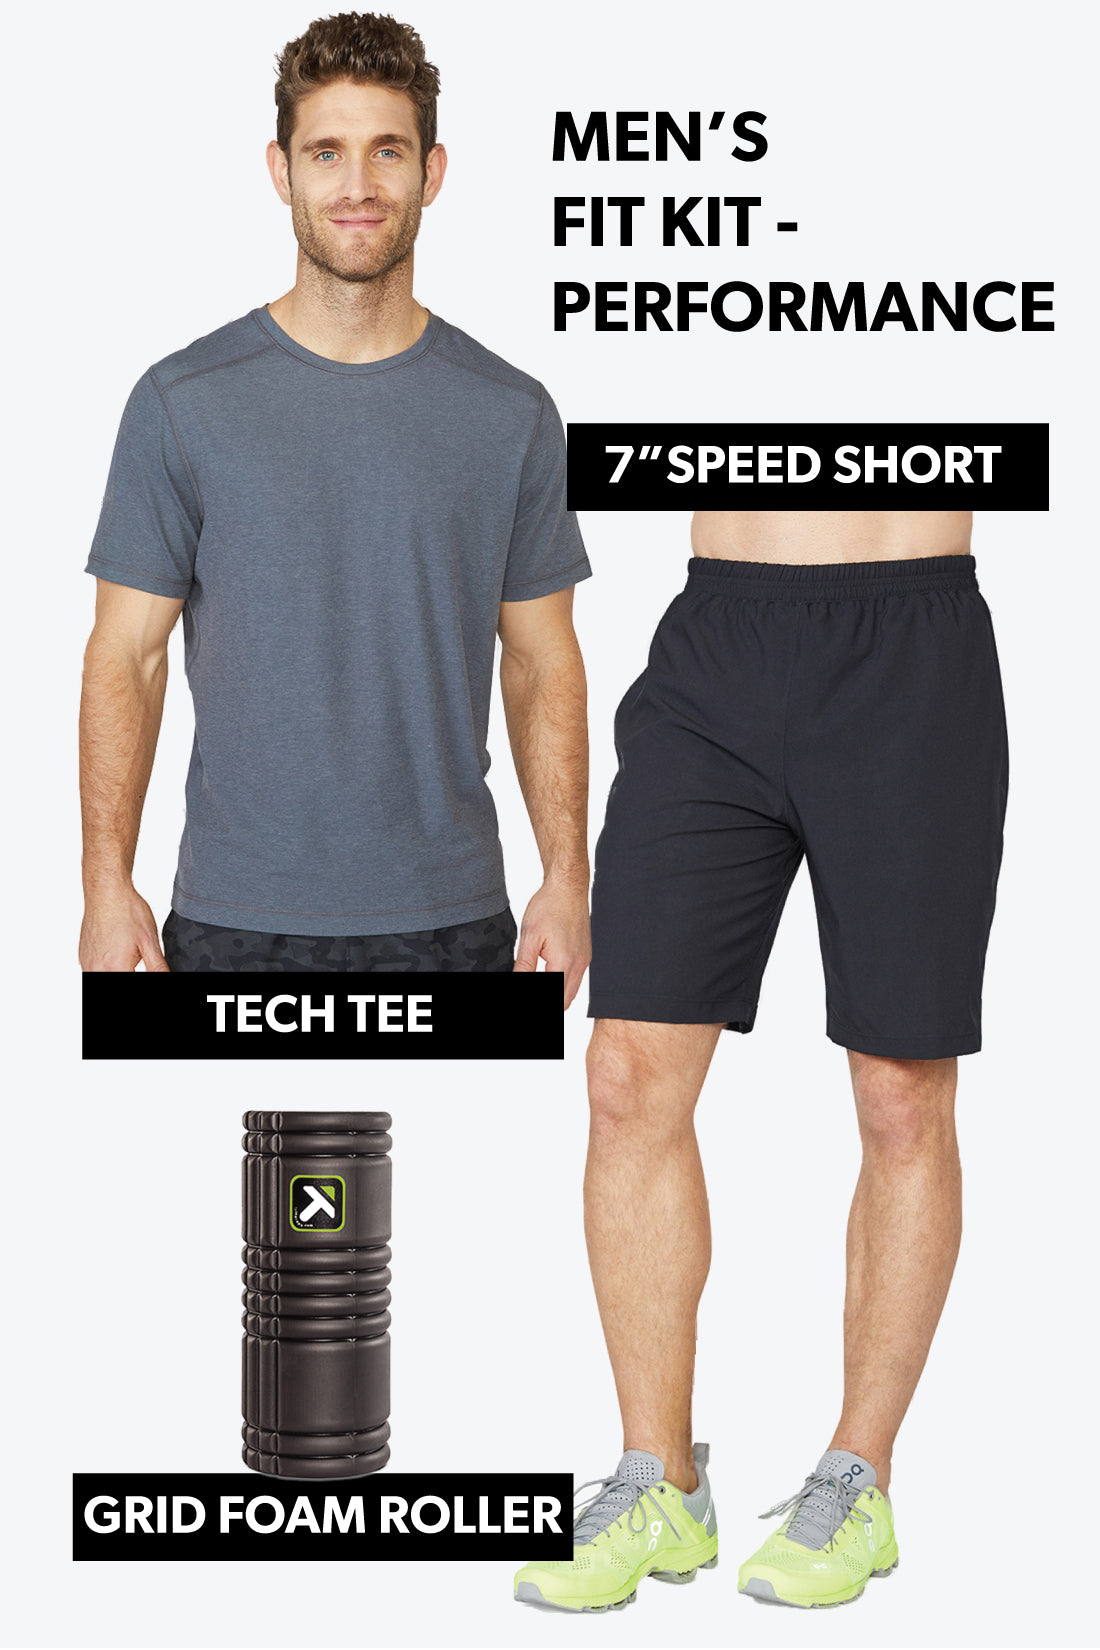 Men's Fit Kit - Performance